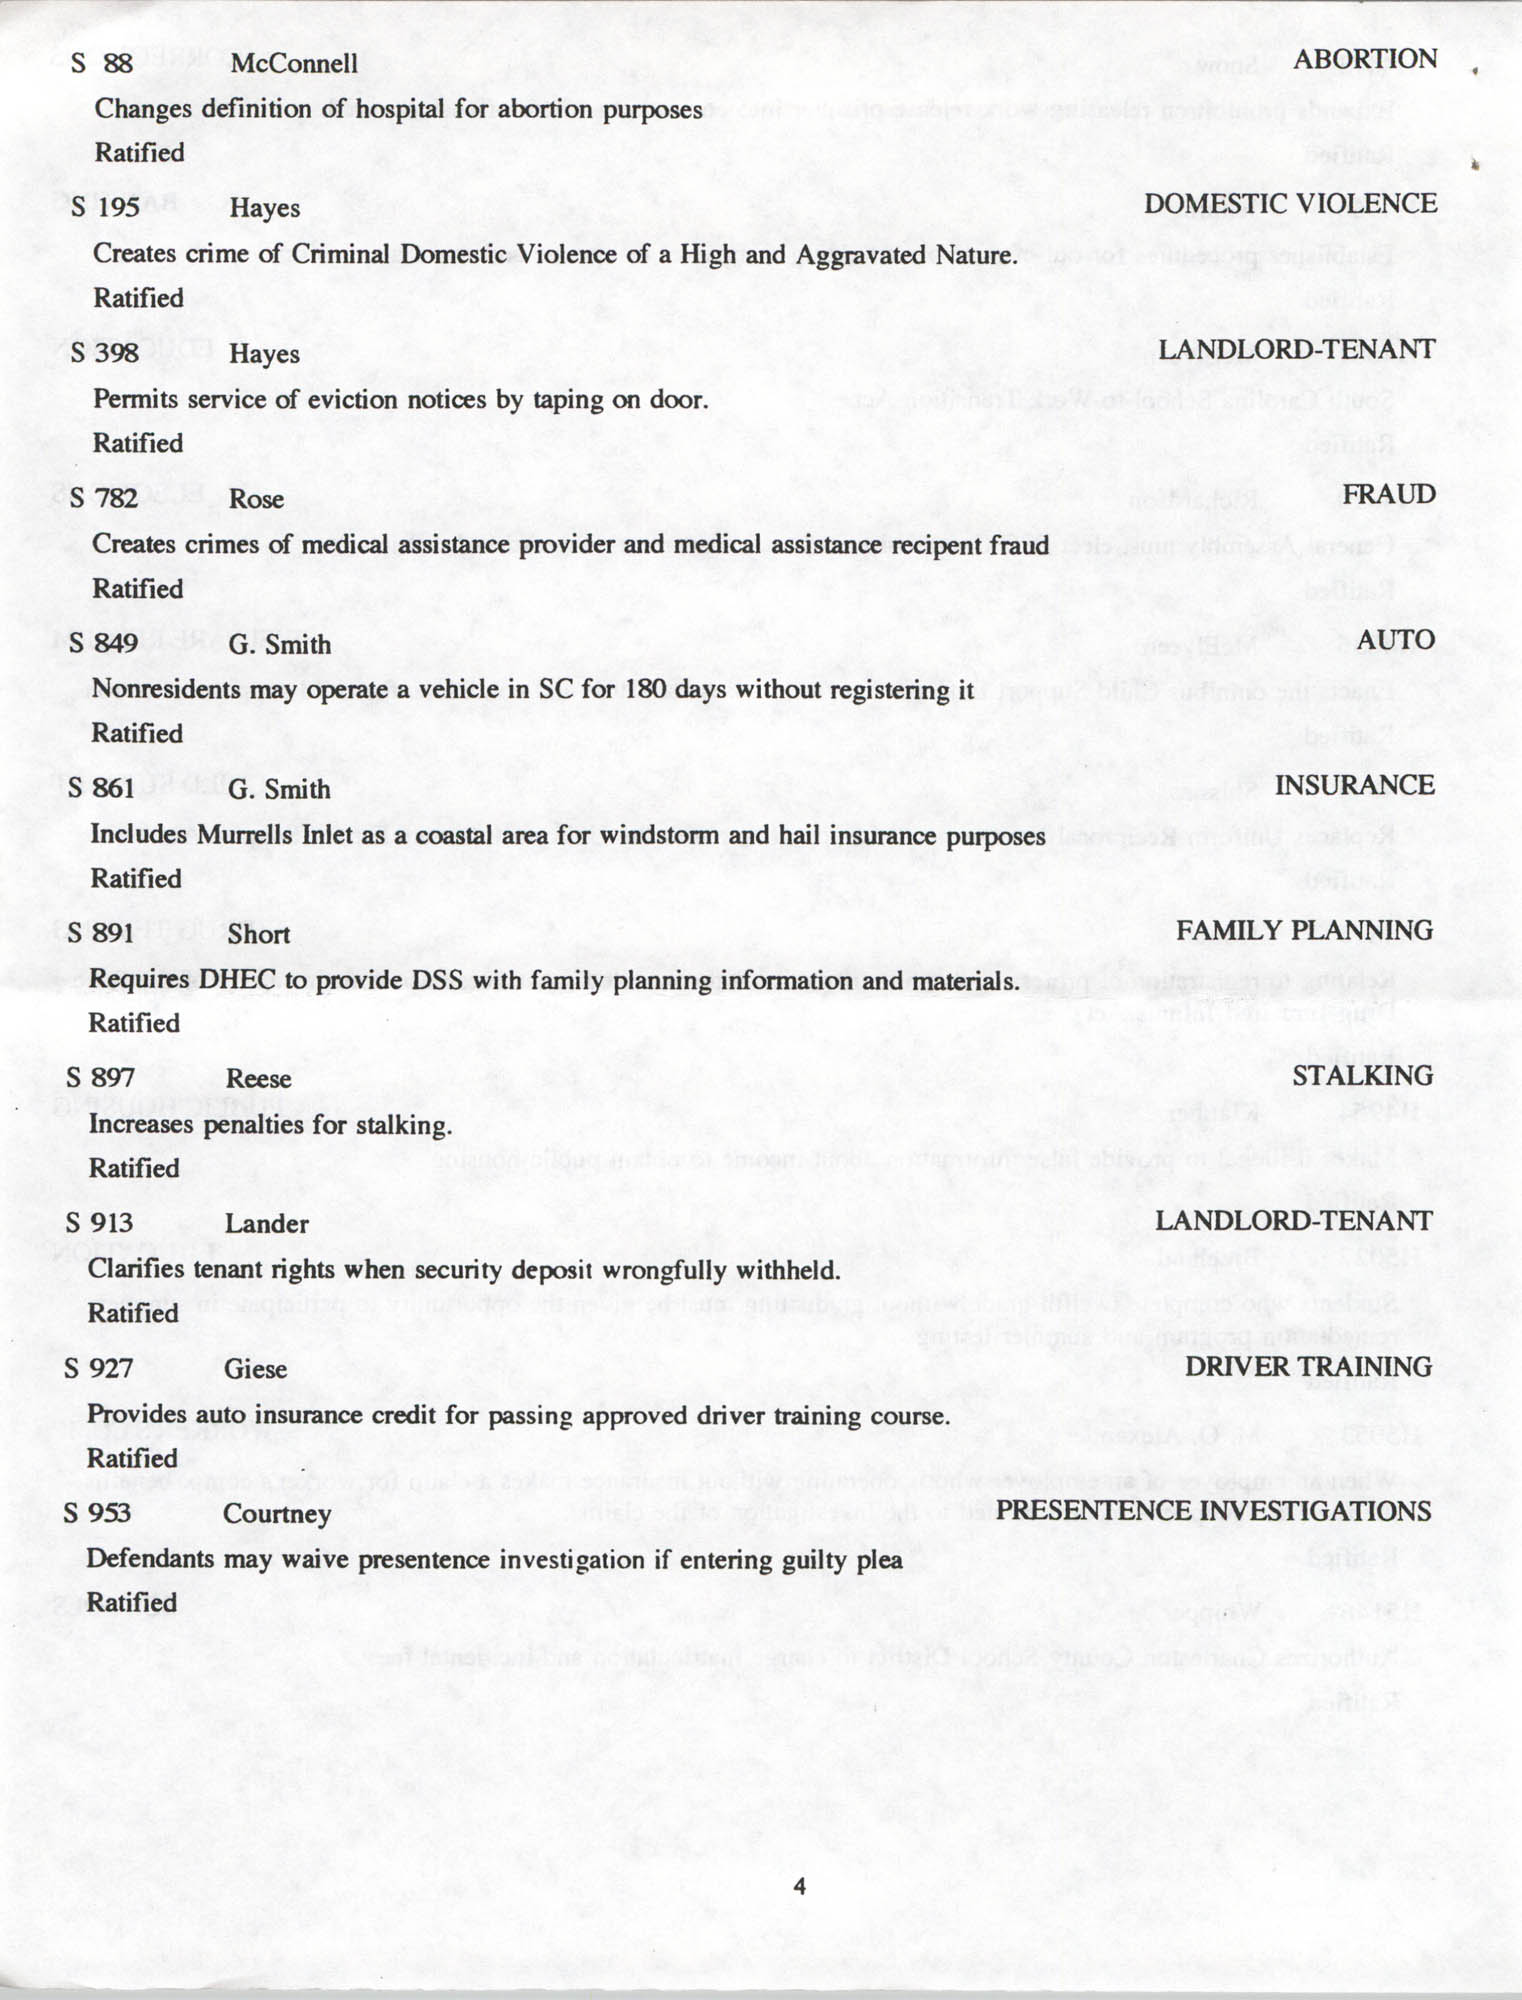 South Carolina Fair Share Legislative Update, June 30, 1994, Page 4